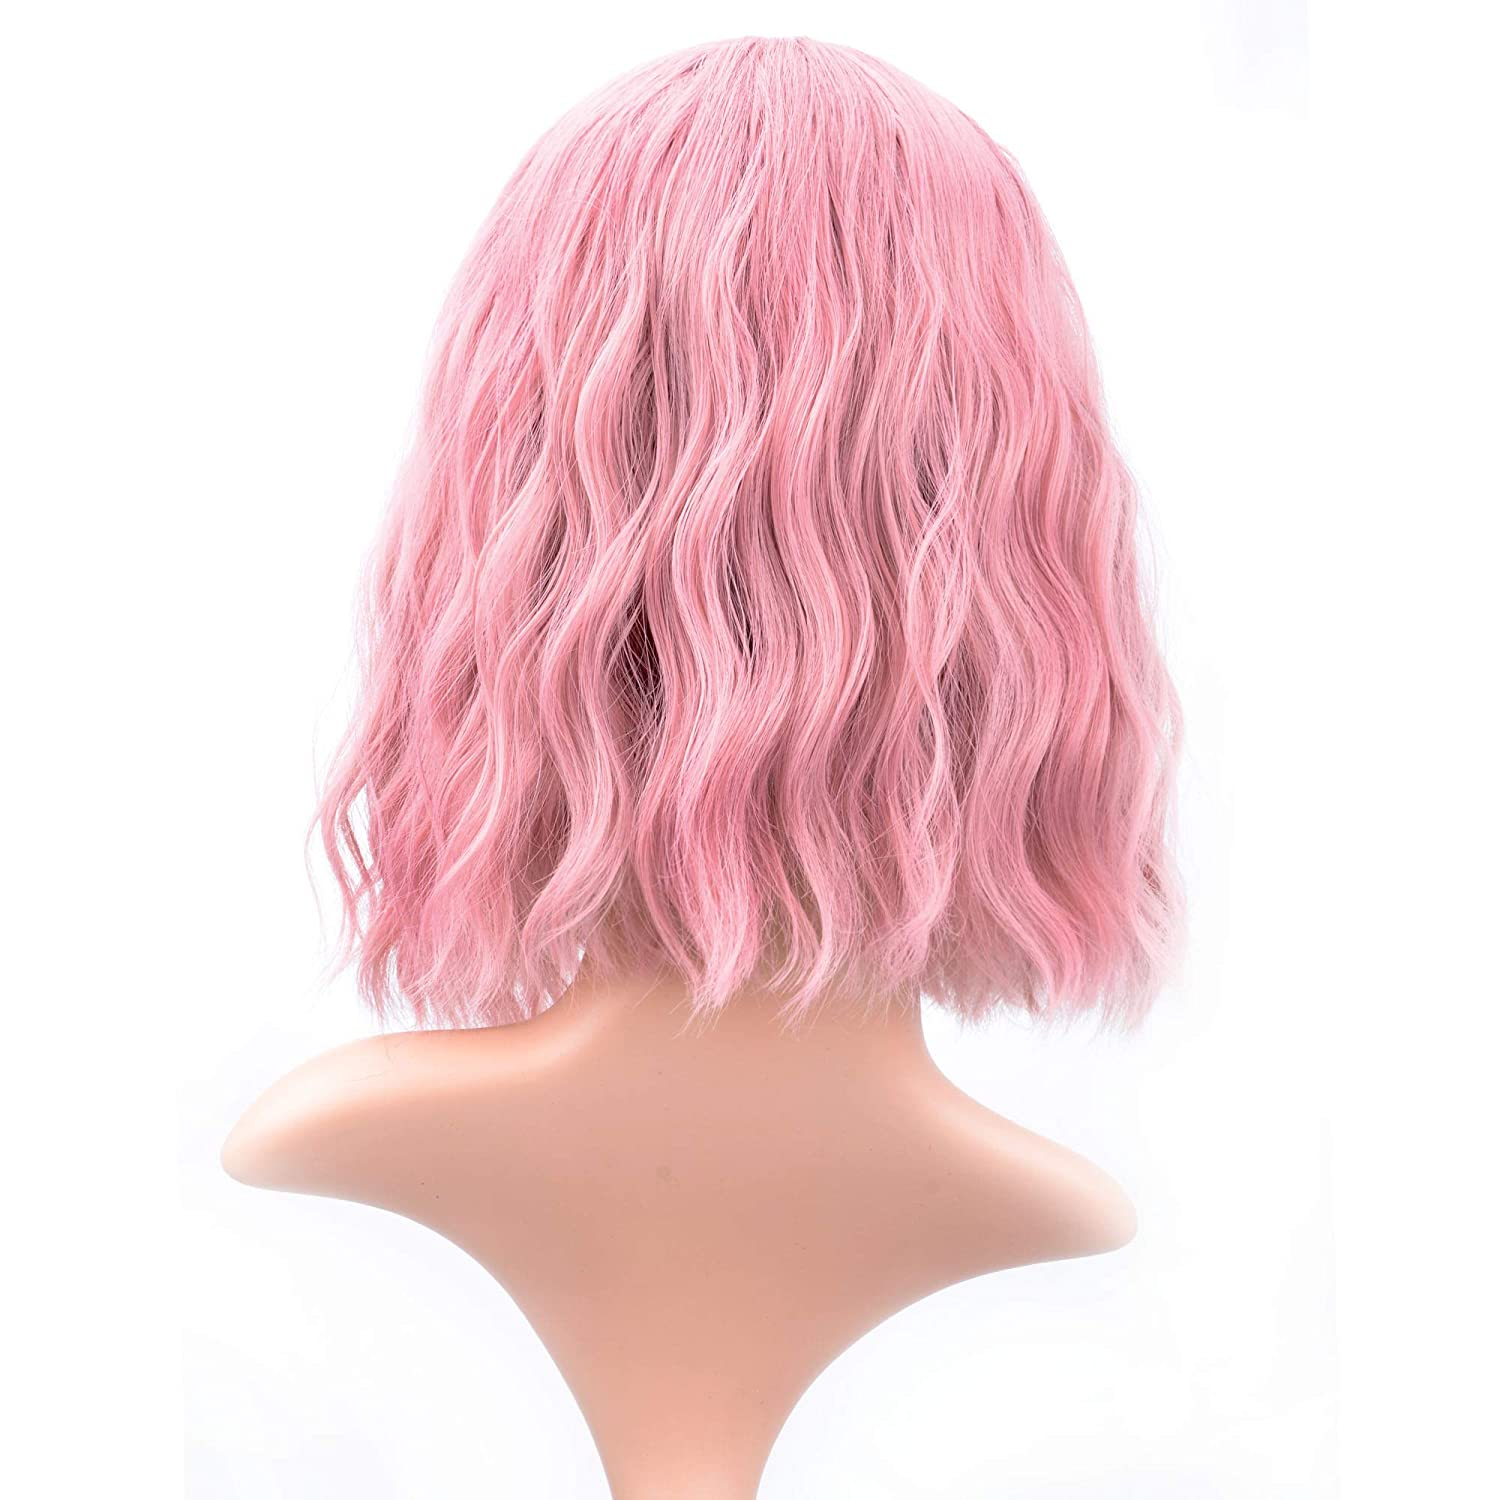 12'' Short Bob Pink Wig, Pastel Wavy Wig Cosplay Wig With Air Bangs - Pink